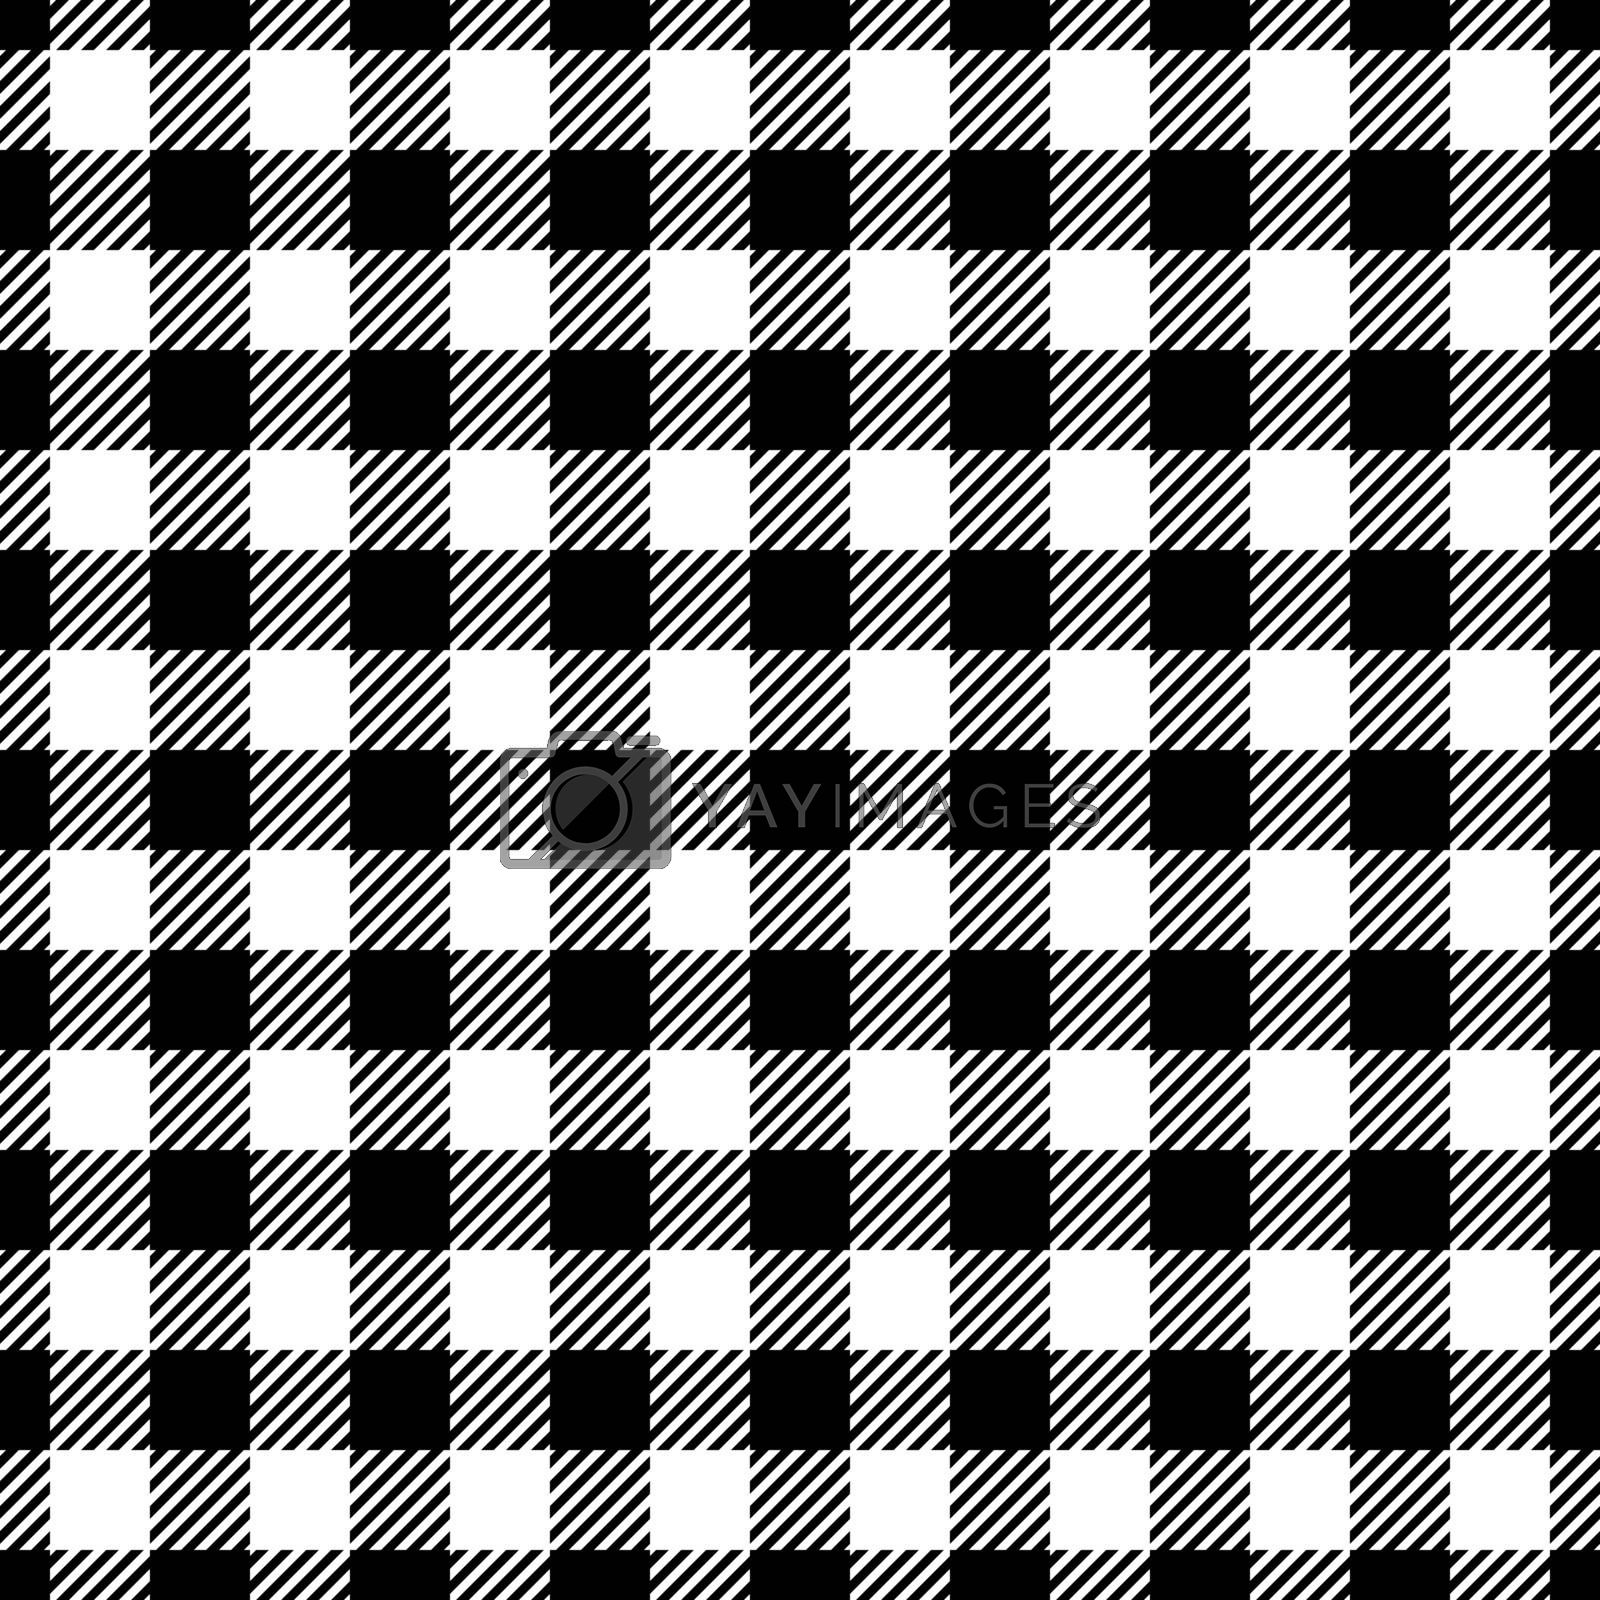 Seamless Black White Traditional Gingham Pattern Fabric Texture